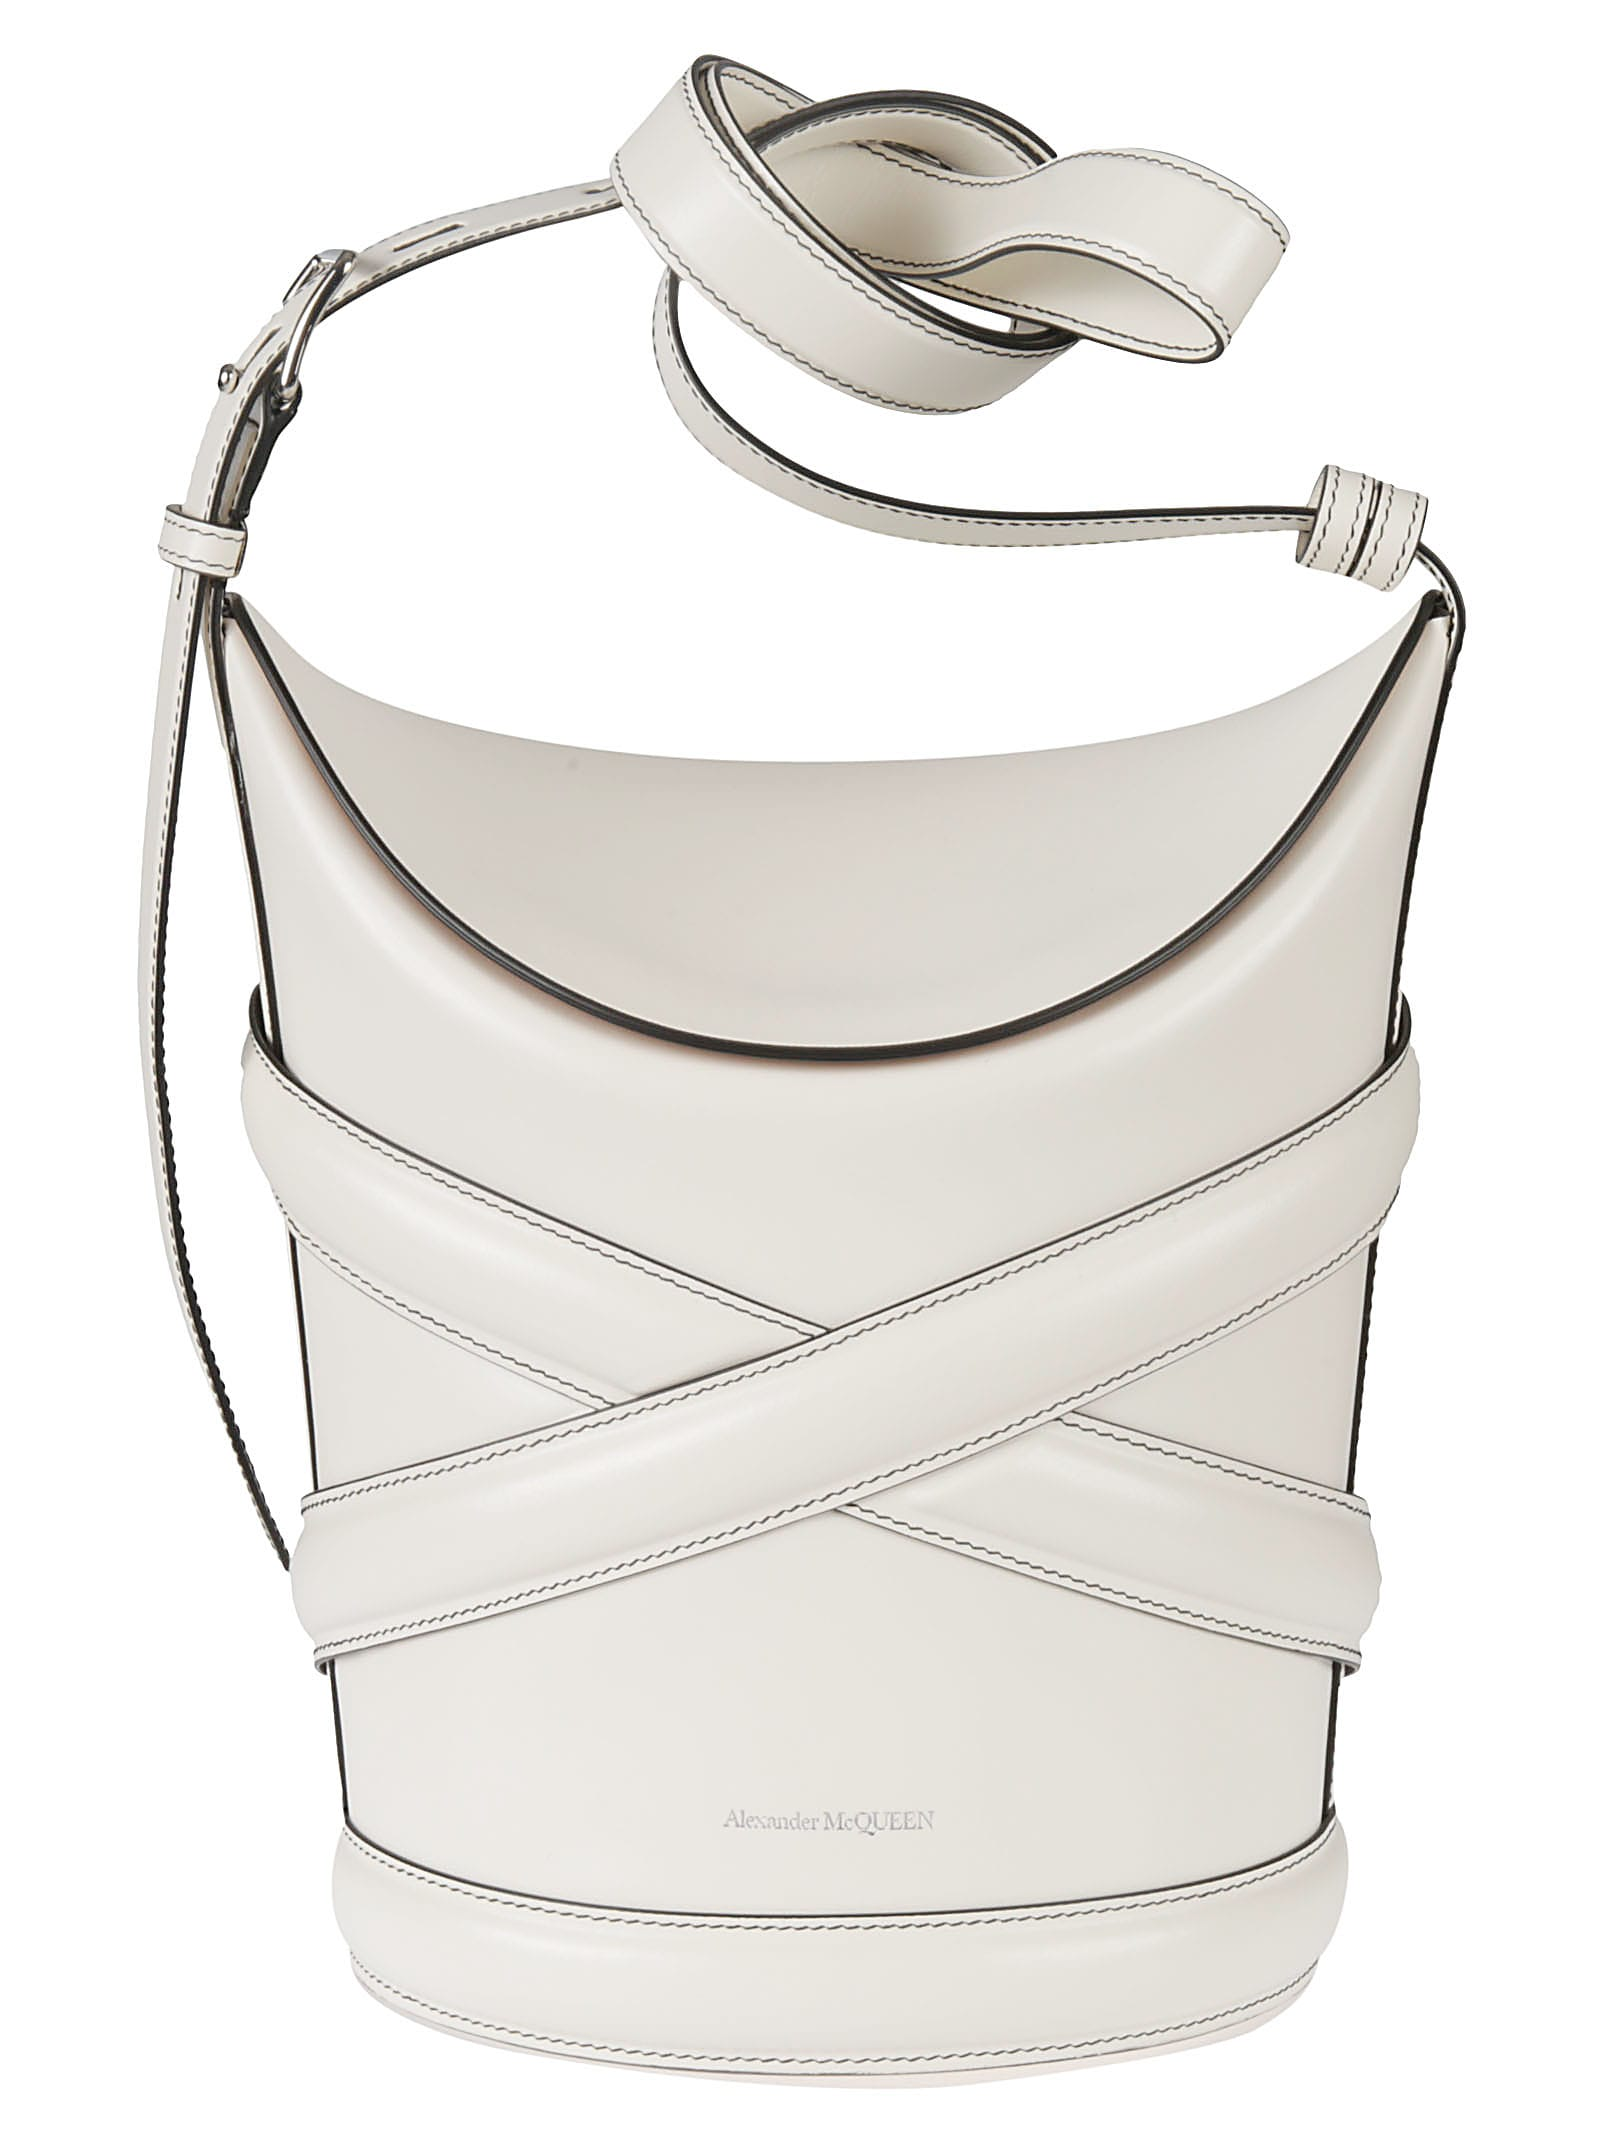 Alexander Mcqueen THE CURVE MEDIUM BUCKET BAG